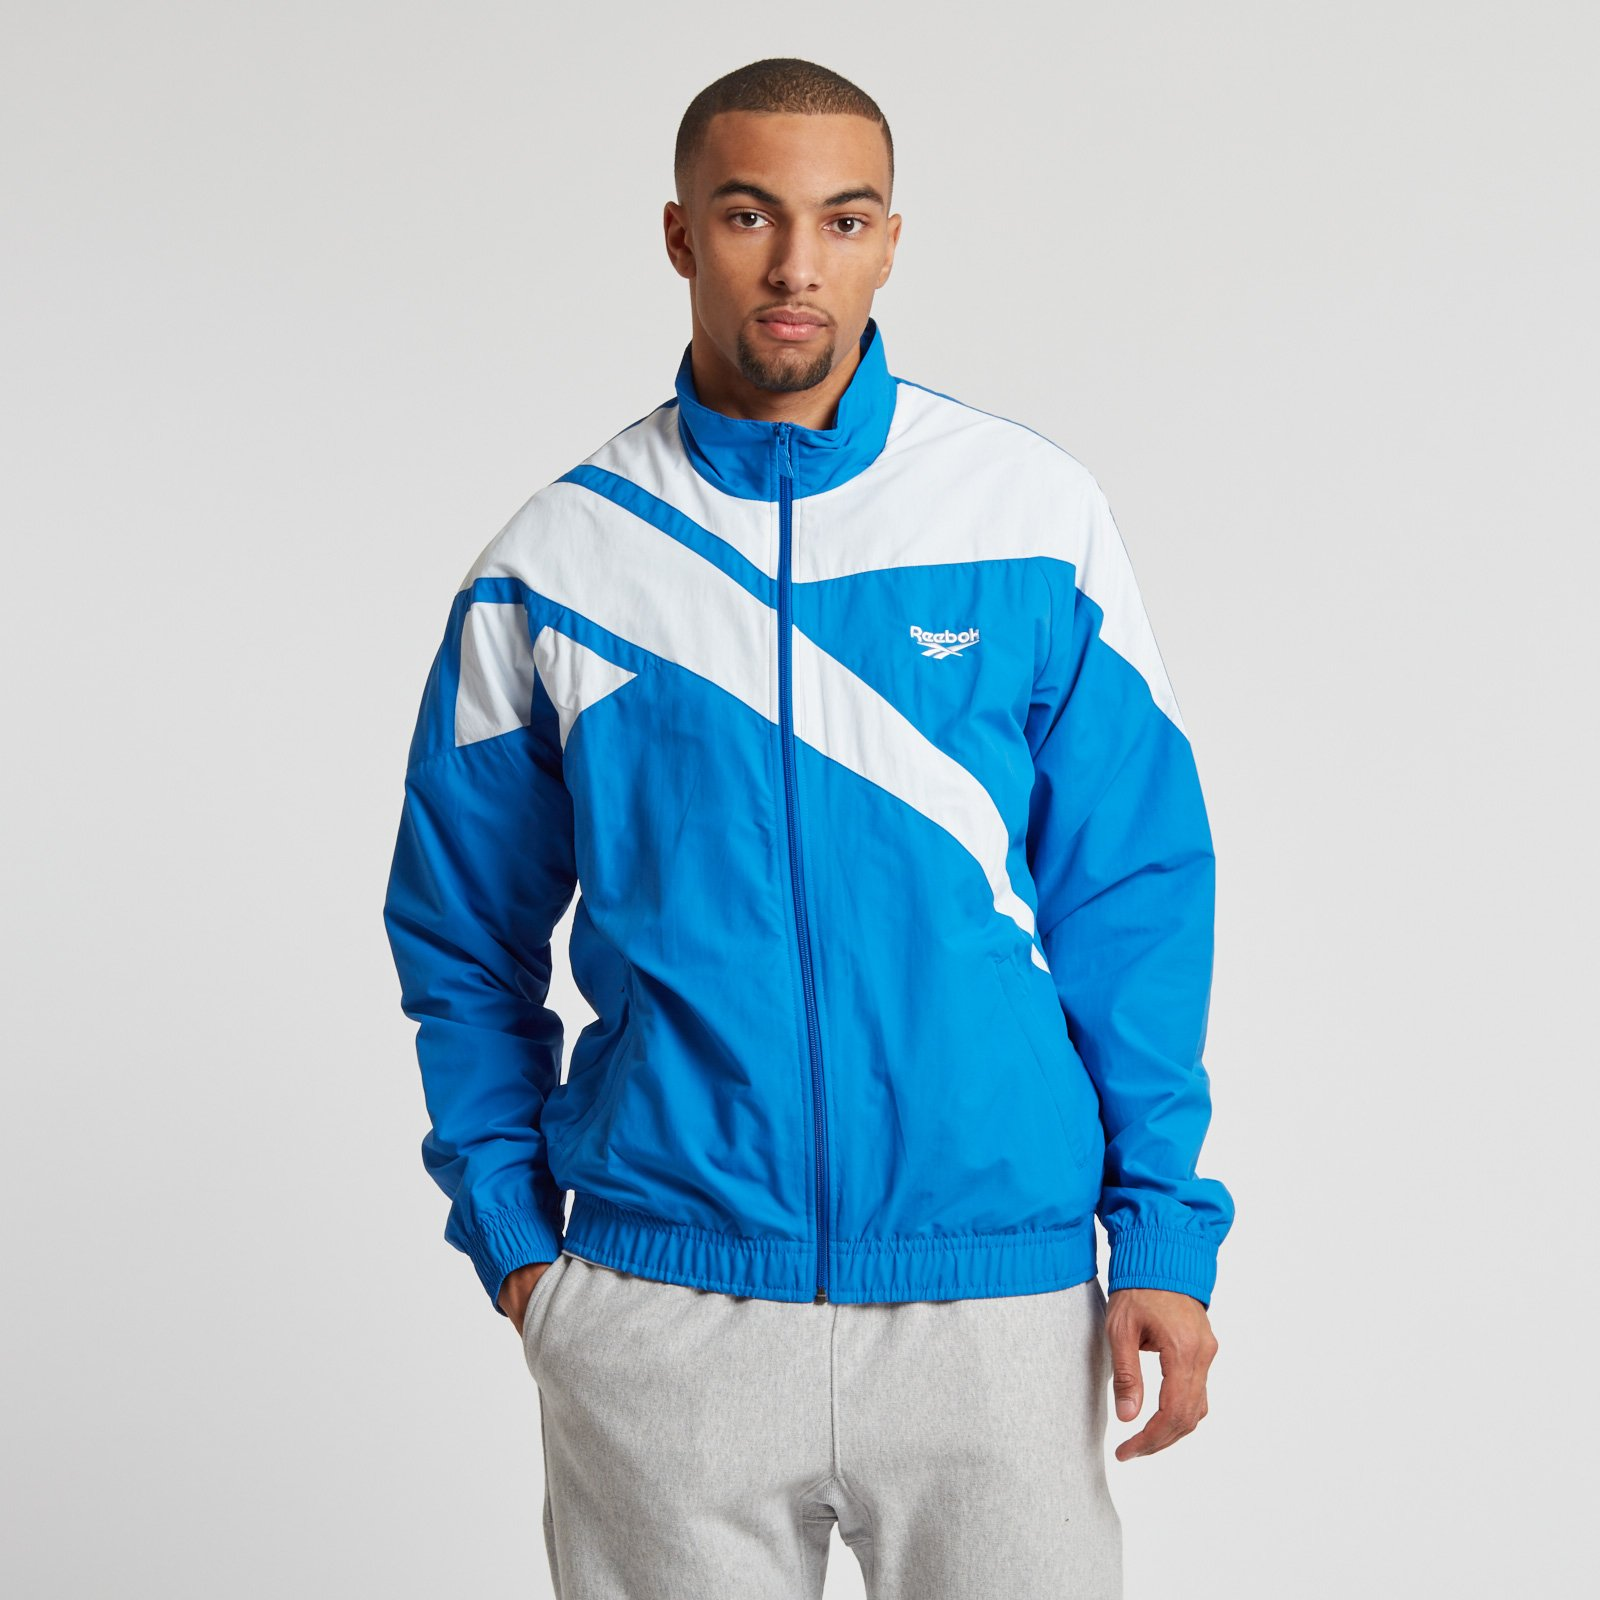 Vector Lf Tracktop Awesome Tracktop Reebok Vector Lf Reebok Awesome qAvSzO6